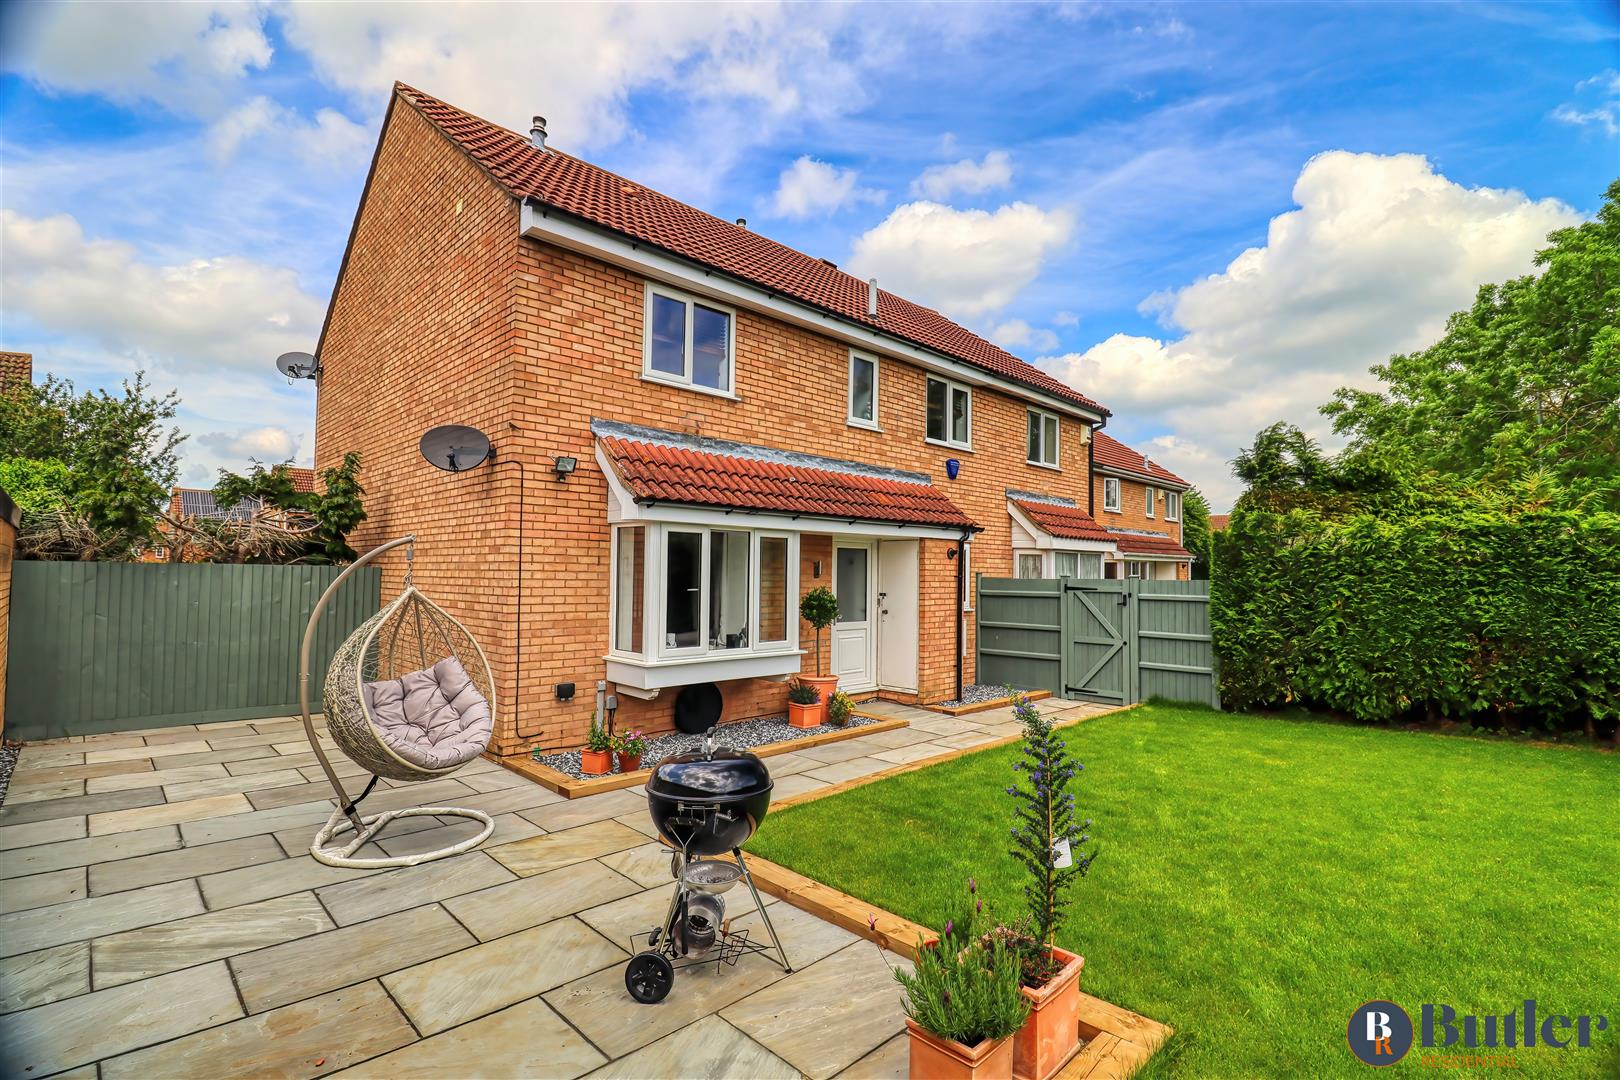 2 bed house for sale in Roe Green, St. Neots, PE19